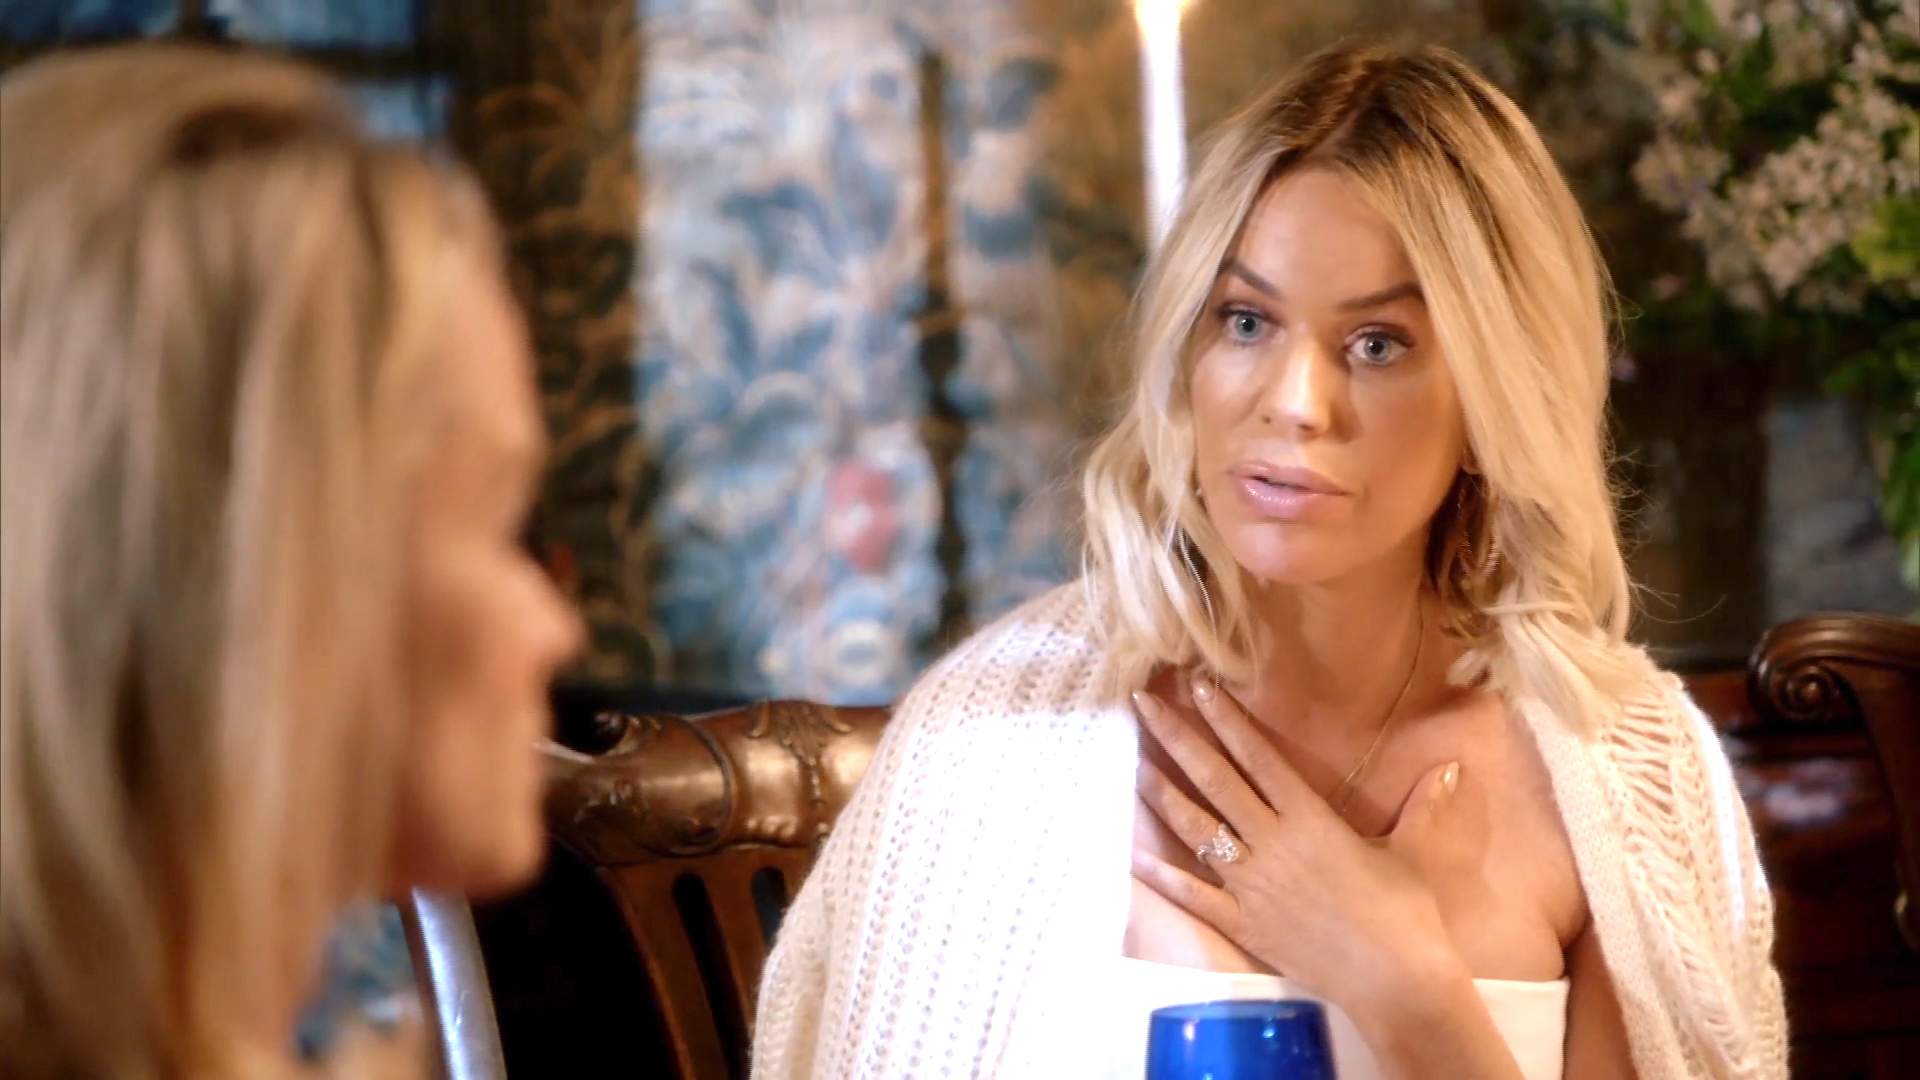 Caroline Stanbury Walks Out of Mapperton